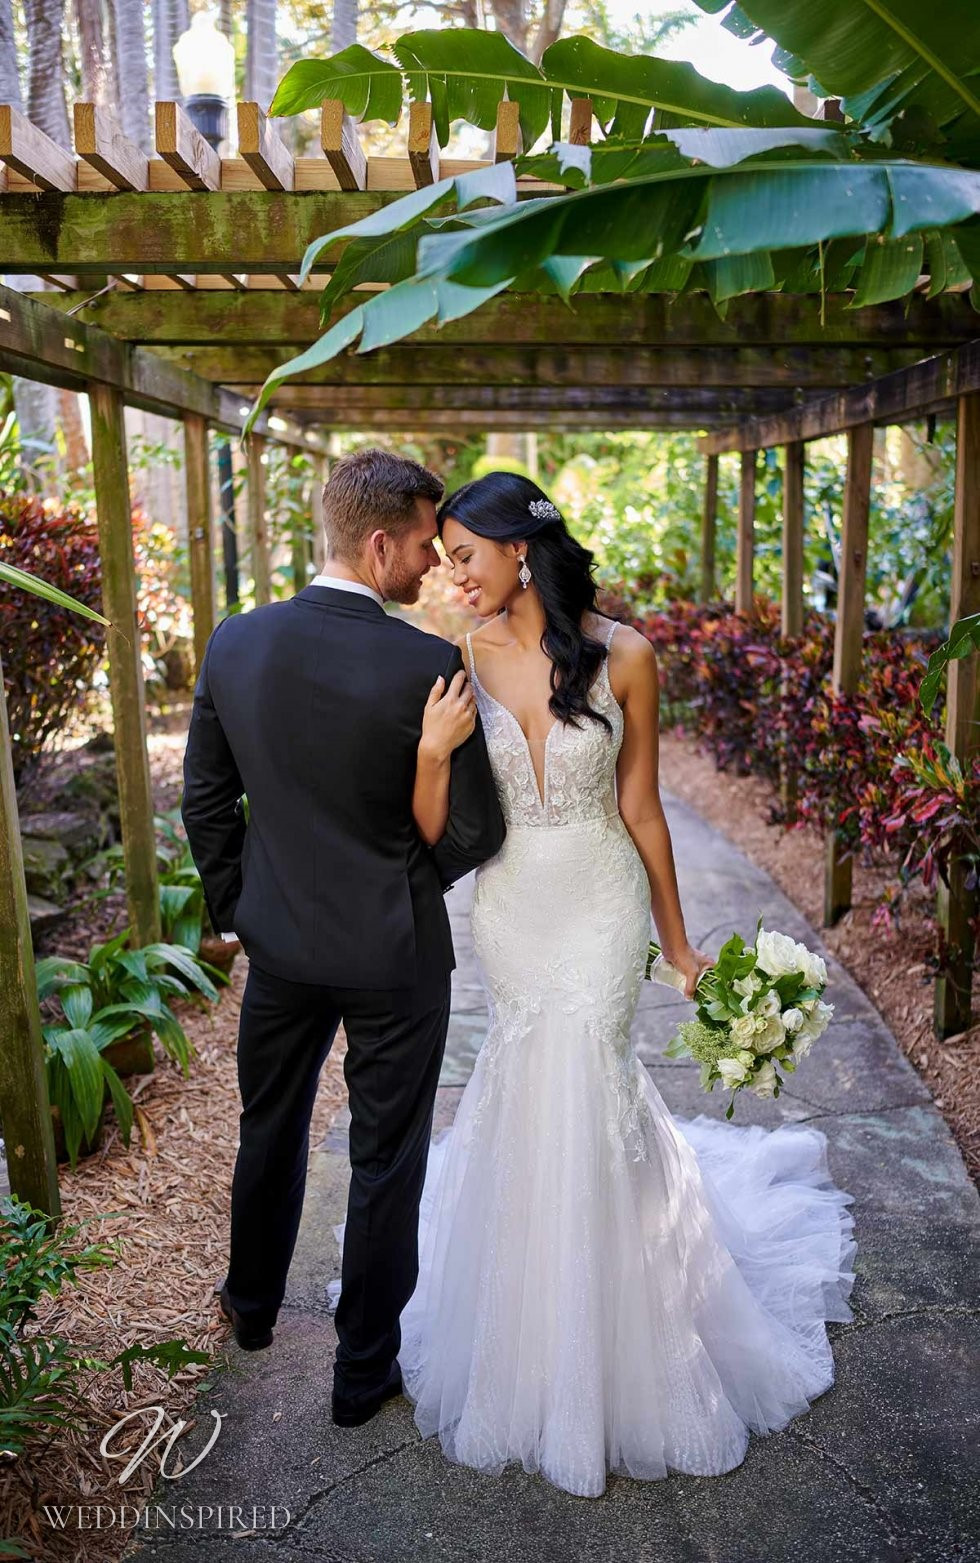 An Essense of Australia lace and tulle mermaid wedding dress